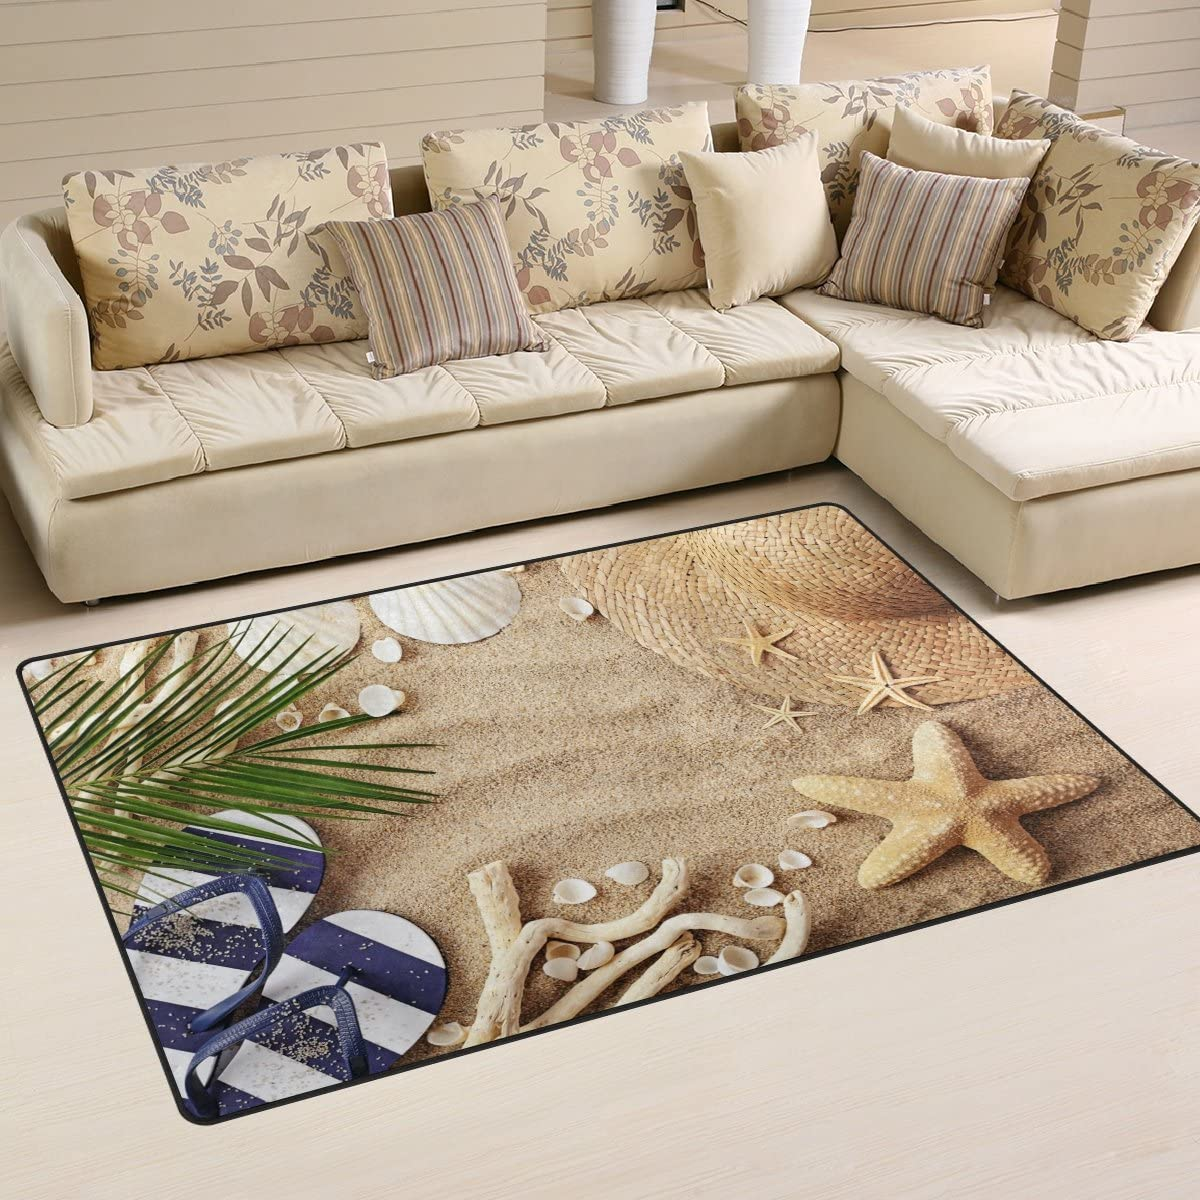 WOZO Sand Beach Palm Tree Leaves Starfish Summer Area Rug Rugs Non-Slip Floor Mat Doormats for Living Room Bedroom 60 x 39 inches